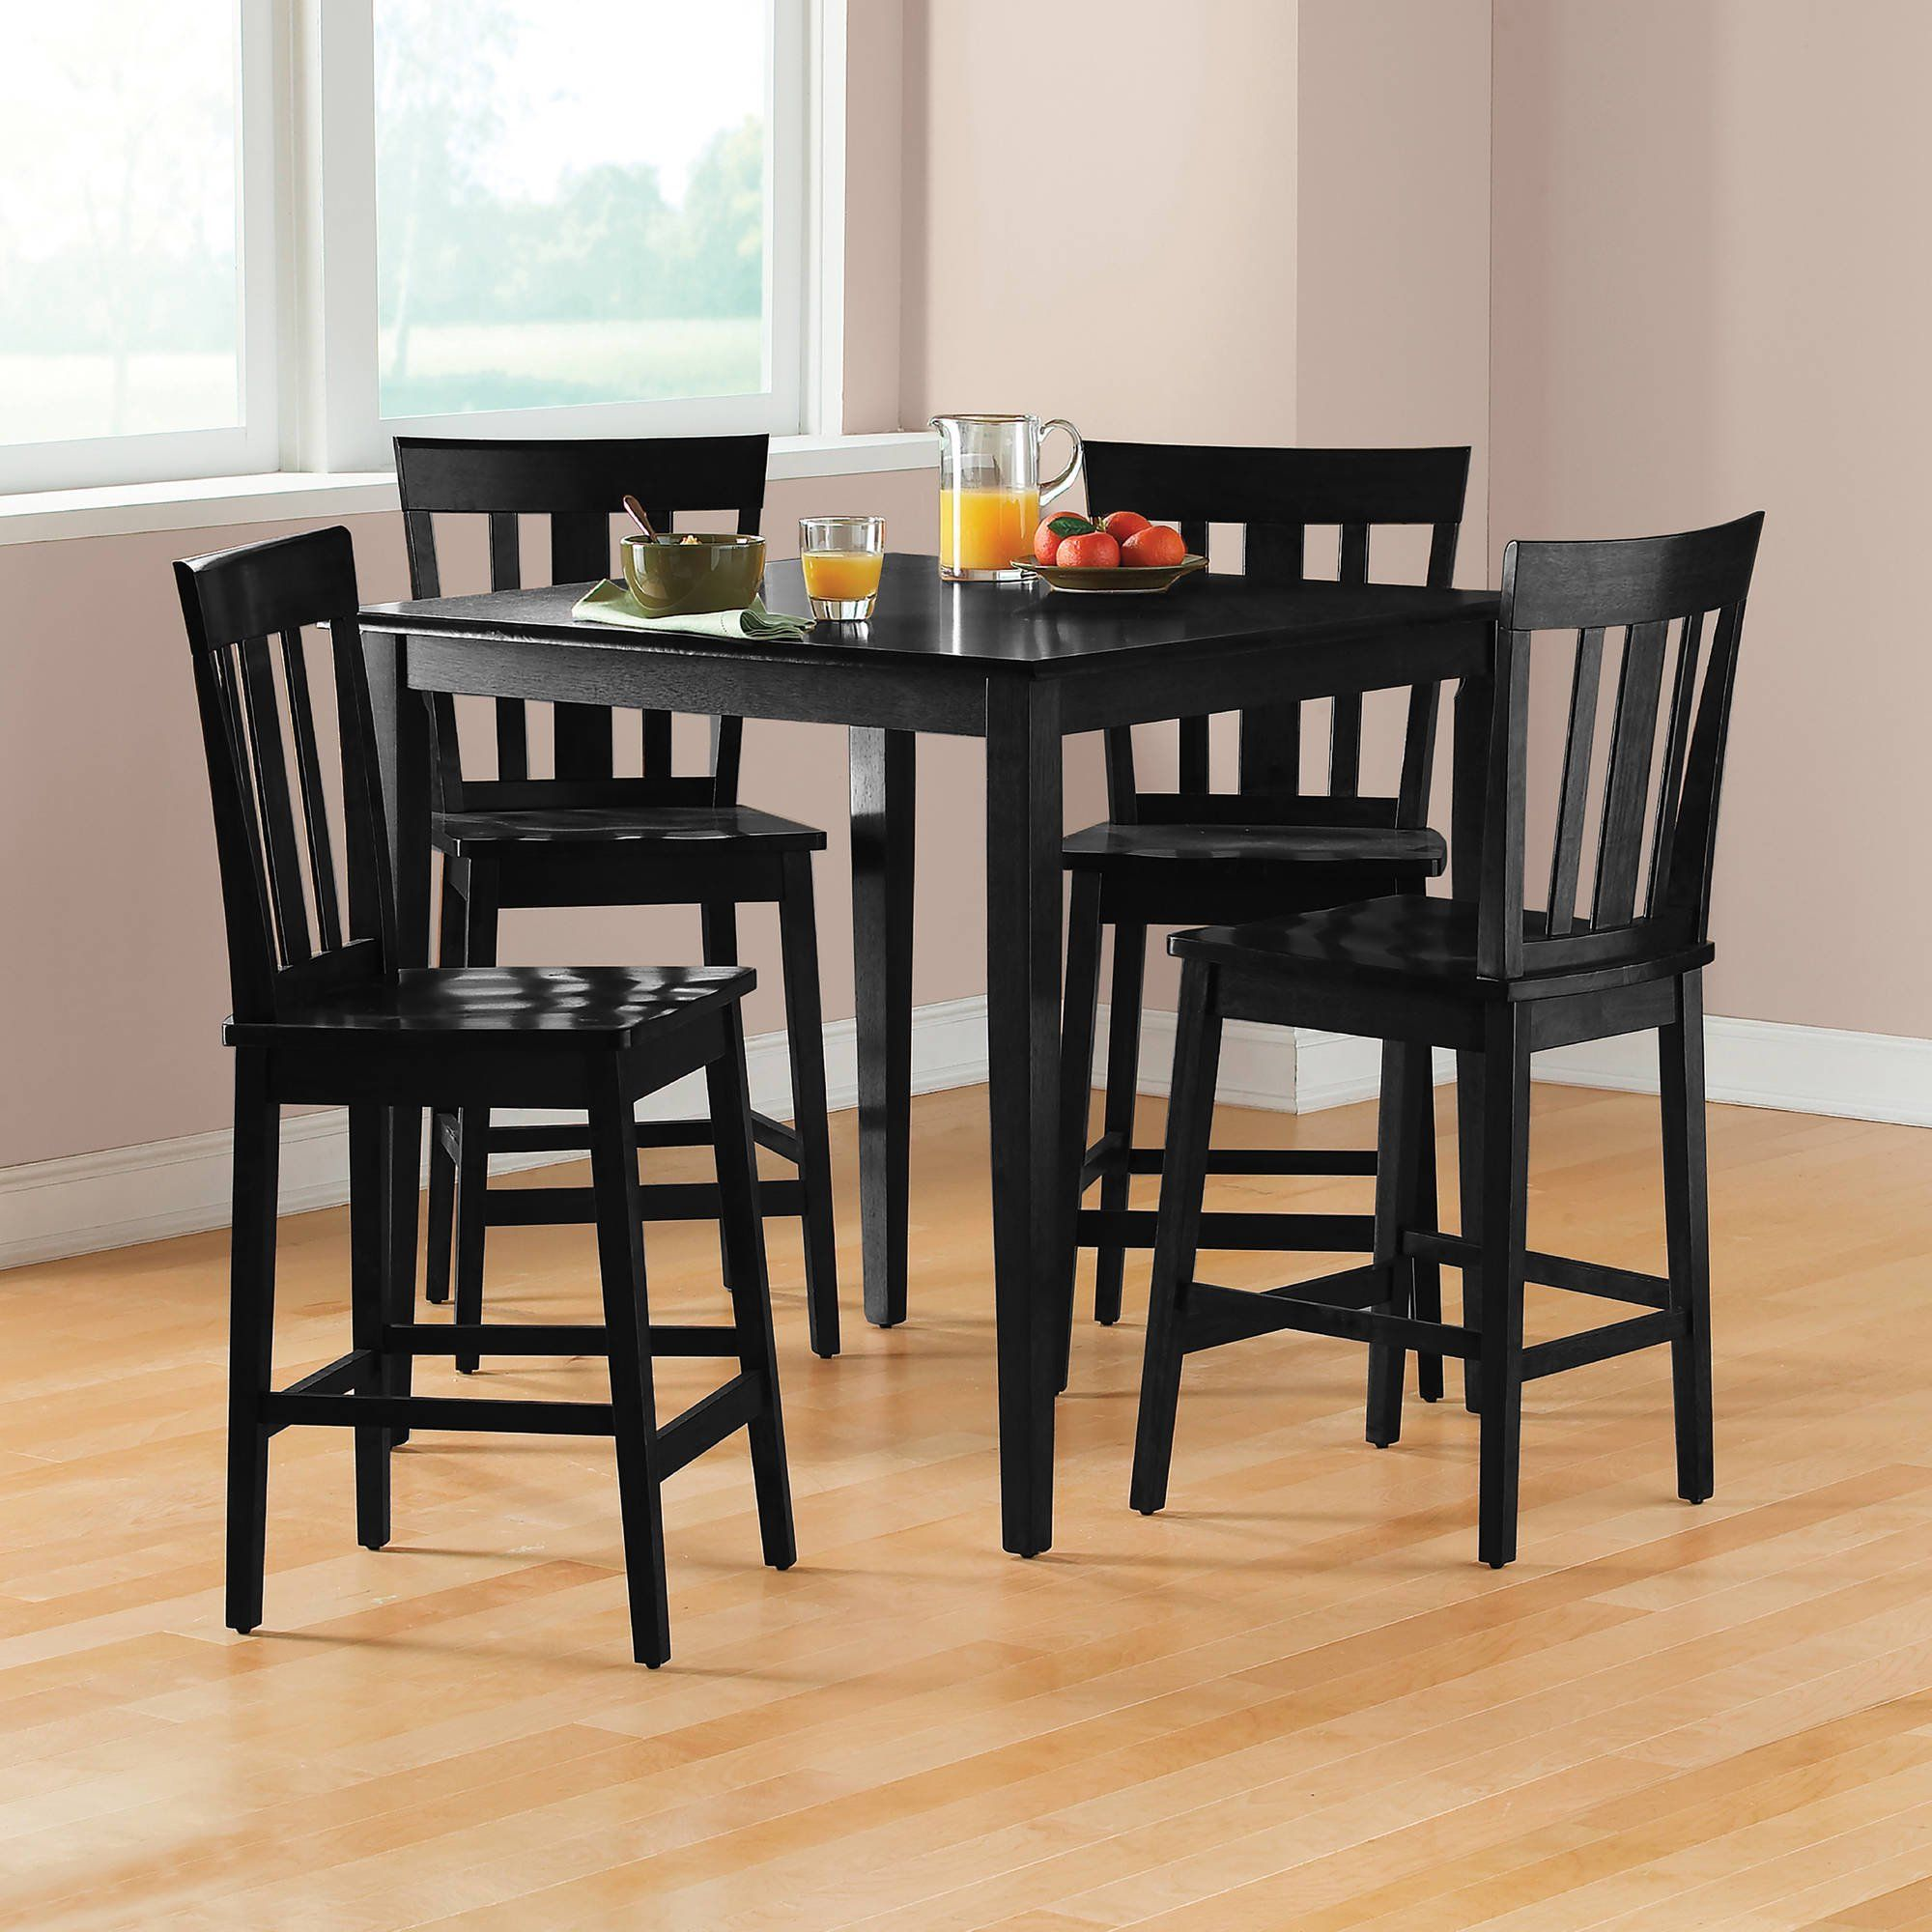 Mainstays 5 Piece Mission Counter Height Dining Set Walmart Com In 2020 Dining Room Sets Counter Height Dining Sets Dining Table Setting